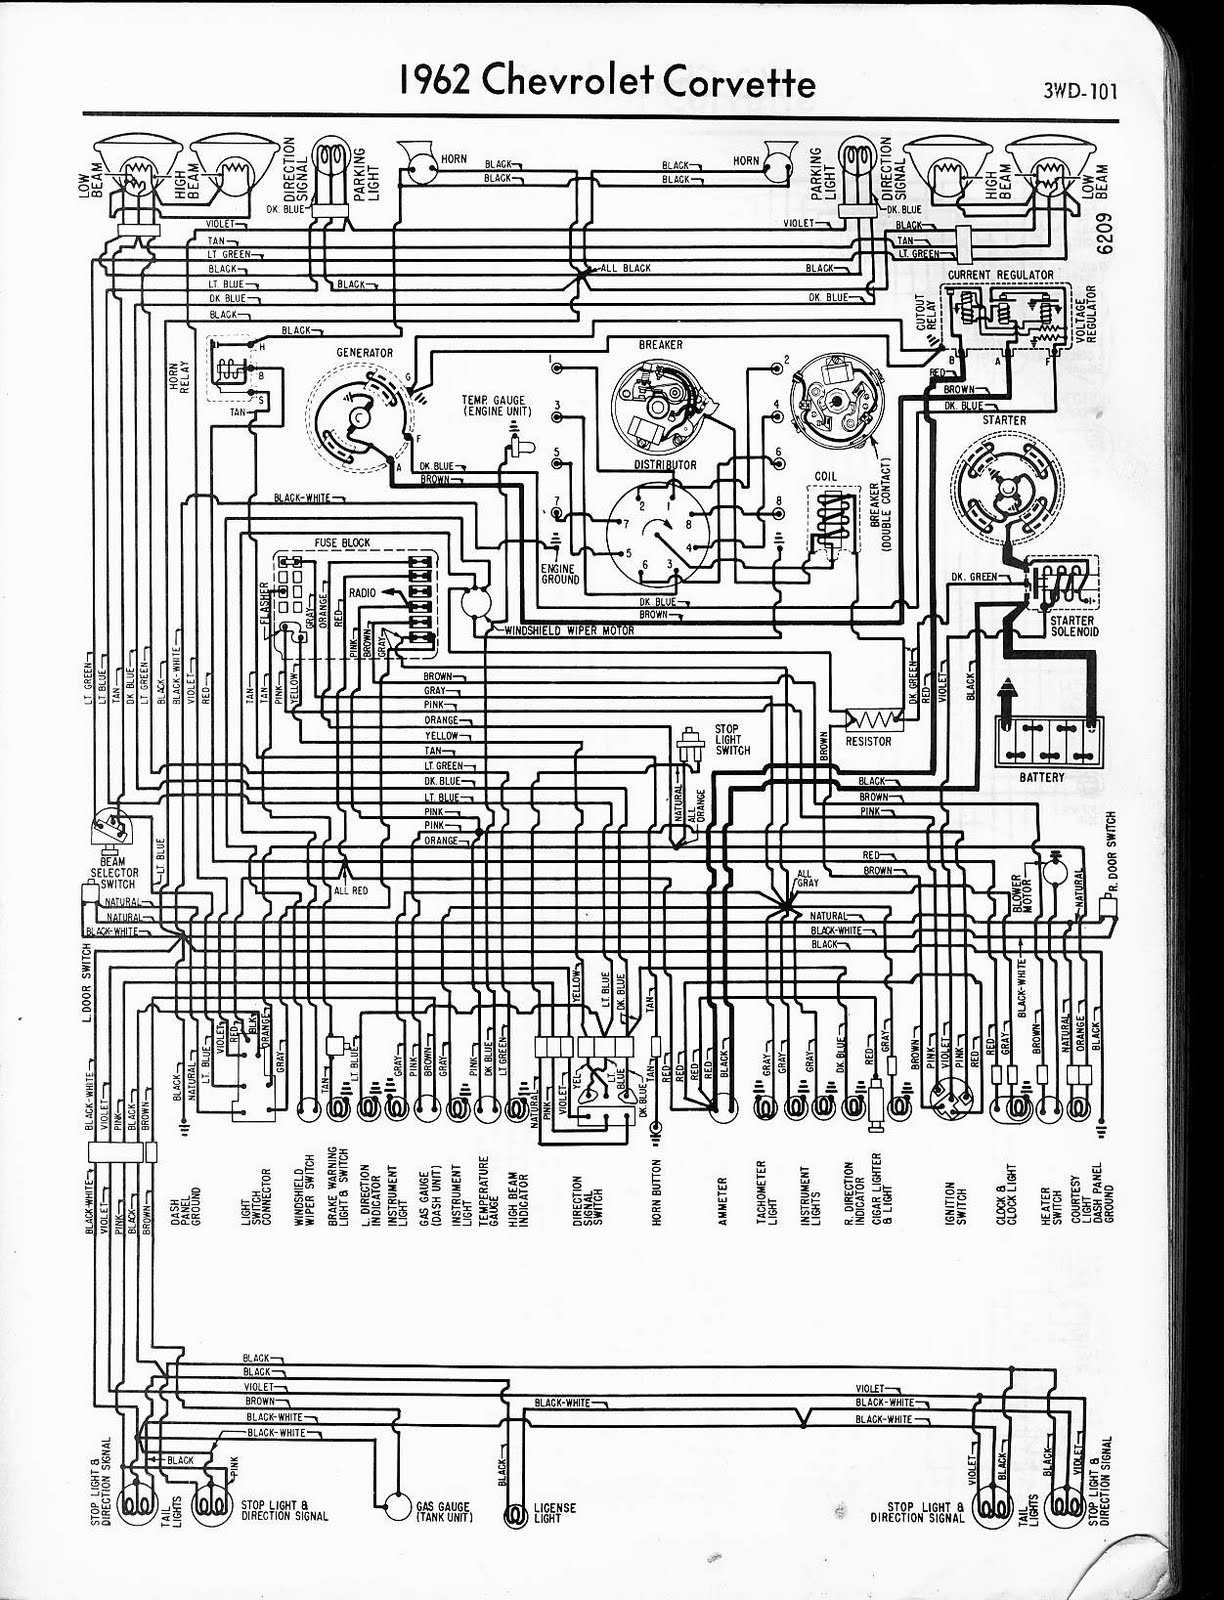 1969 Chevy Truck Turn Signal Wiring Diagram Library Auto 1965 Free 1962 Chevrolet Corvette